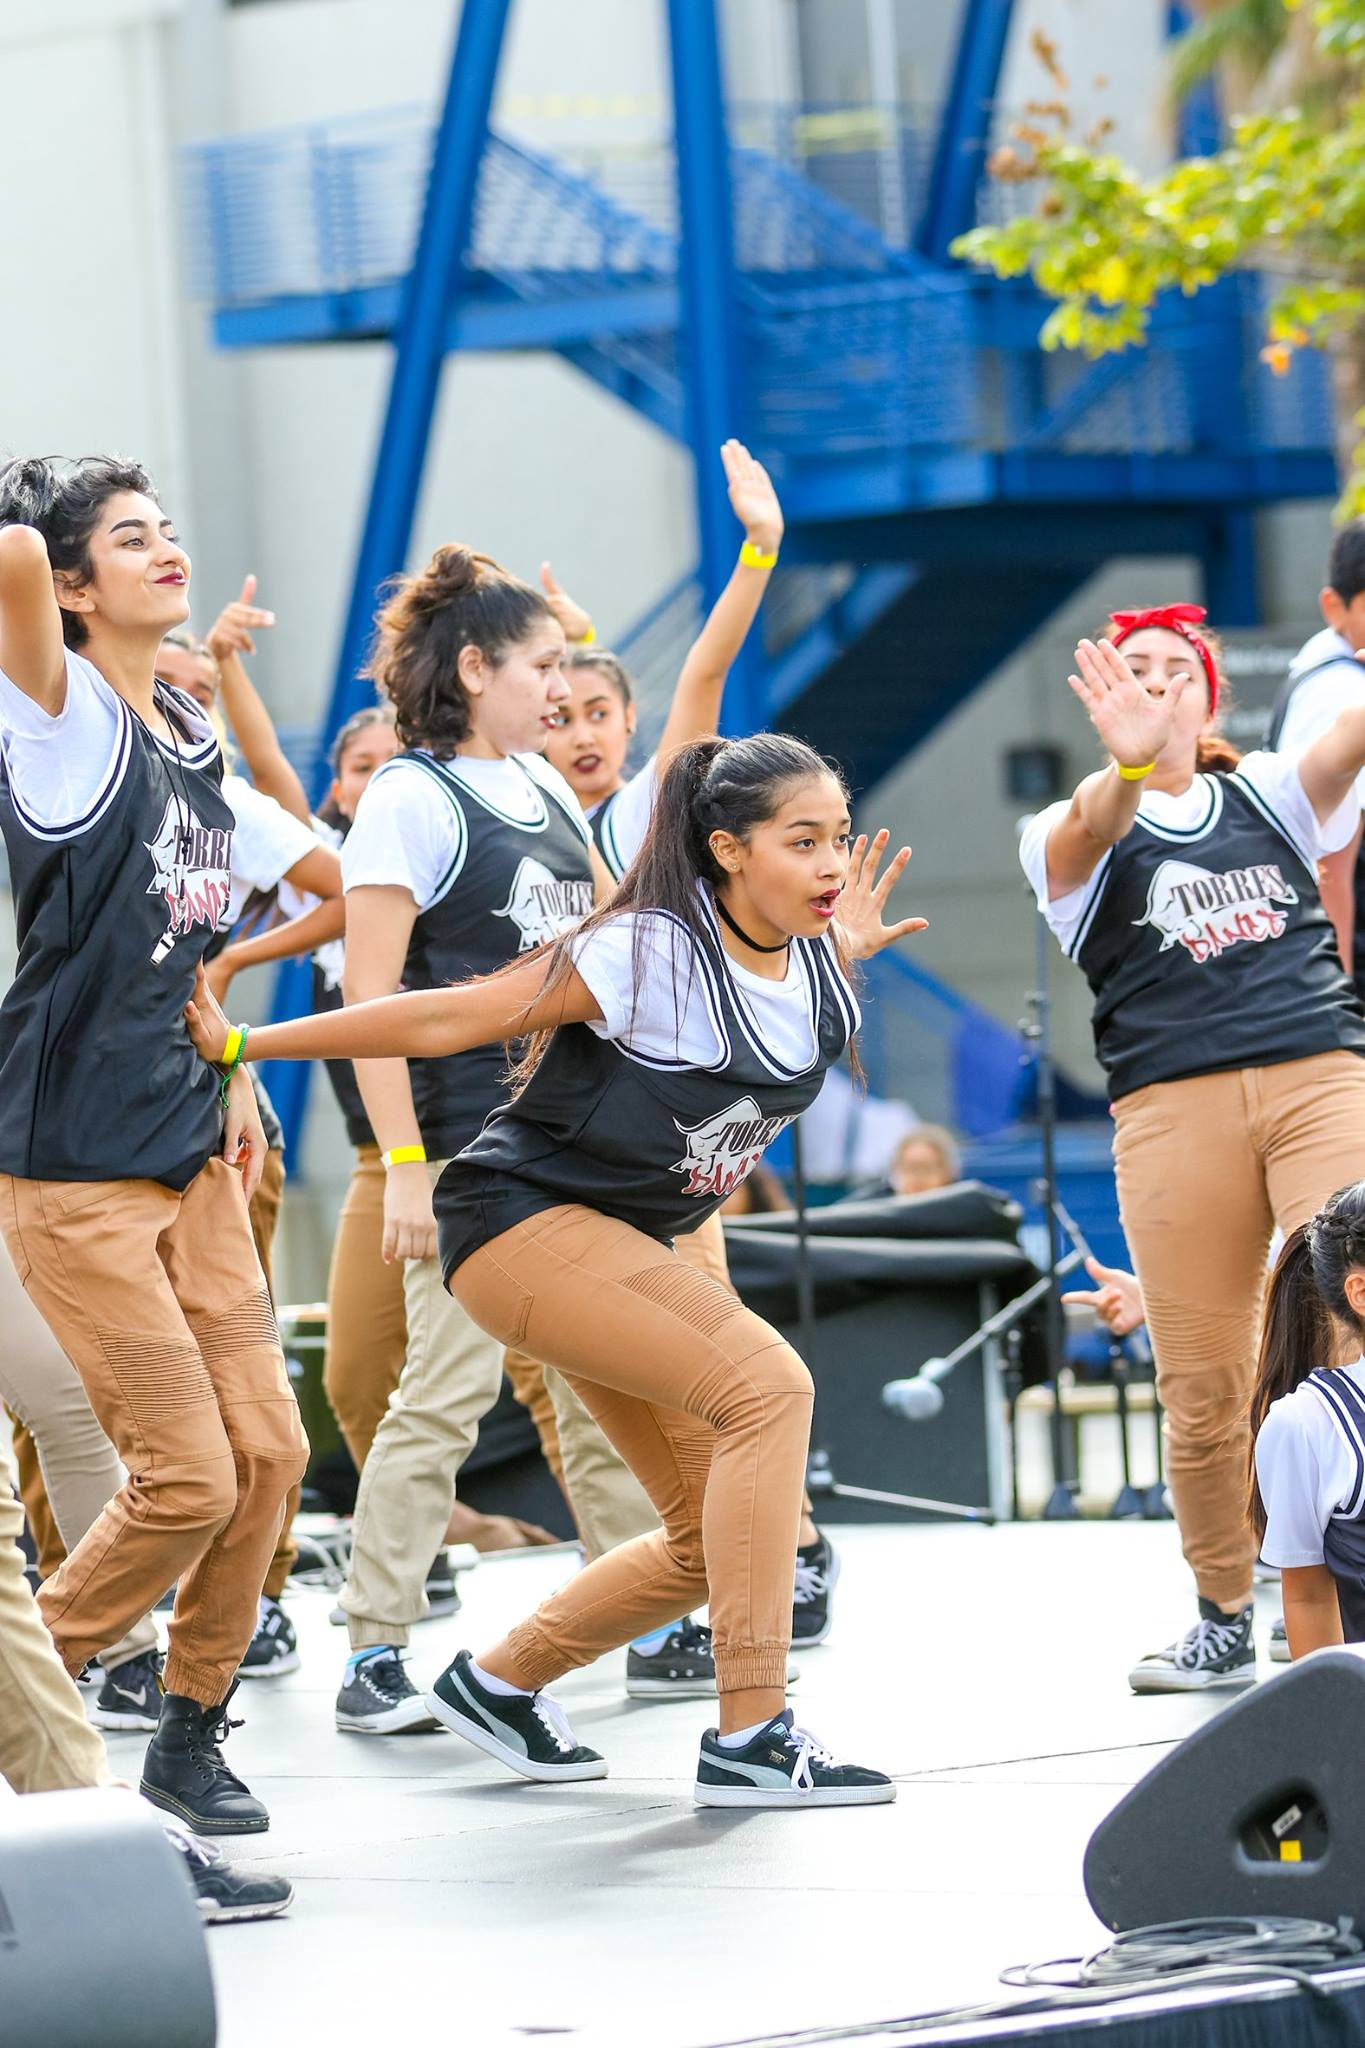 Rhythm Impact, EduCare's Dance Team from Esteban E. Torres High School performing at PATapalooza.   Photo by: Juan Alaniz